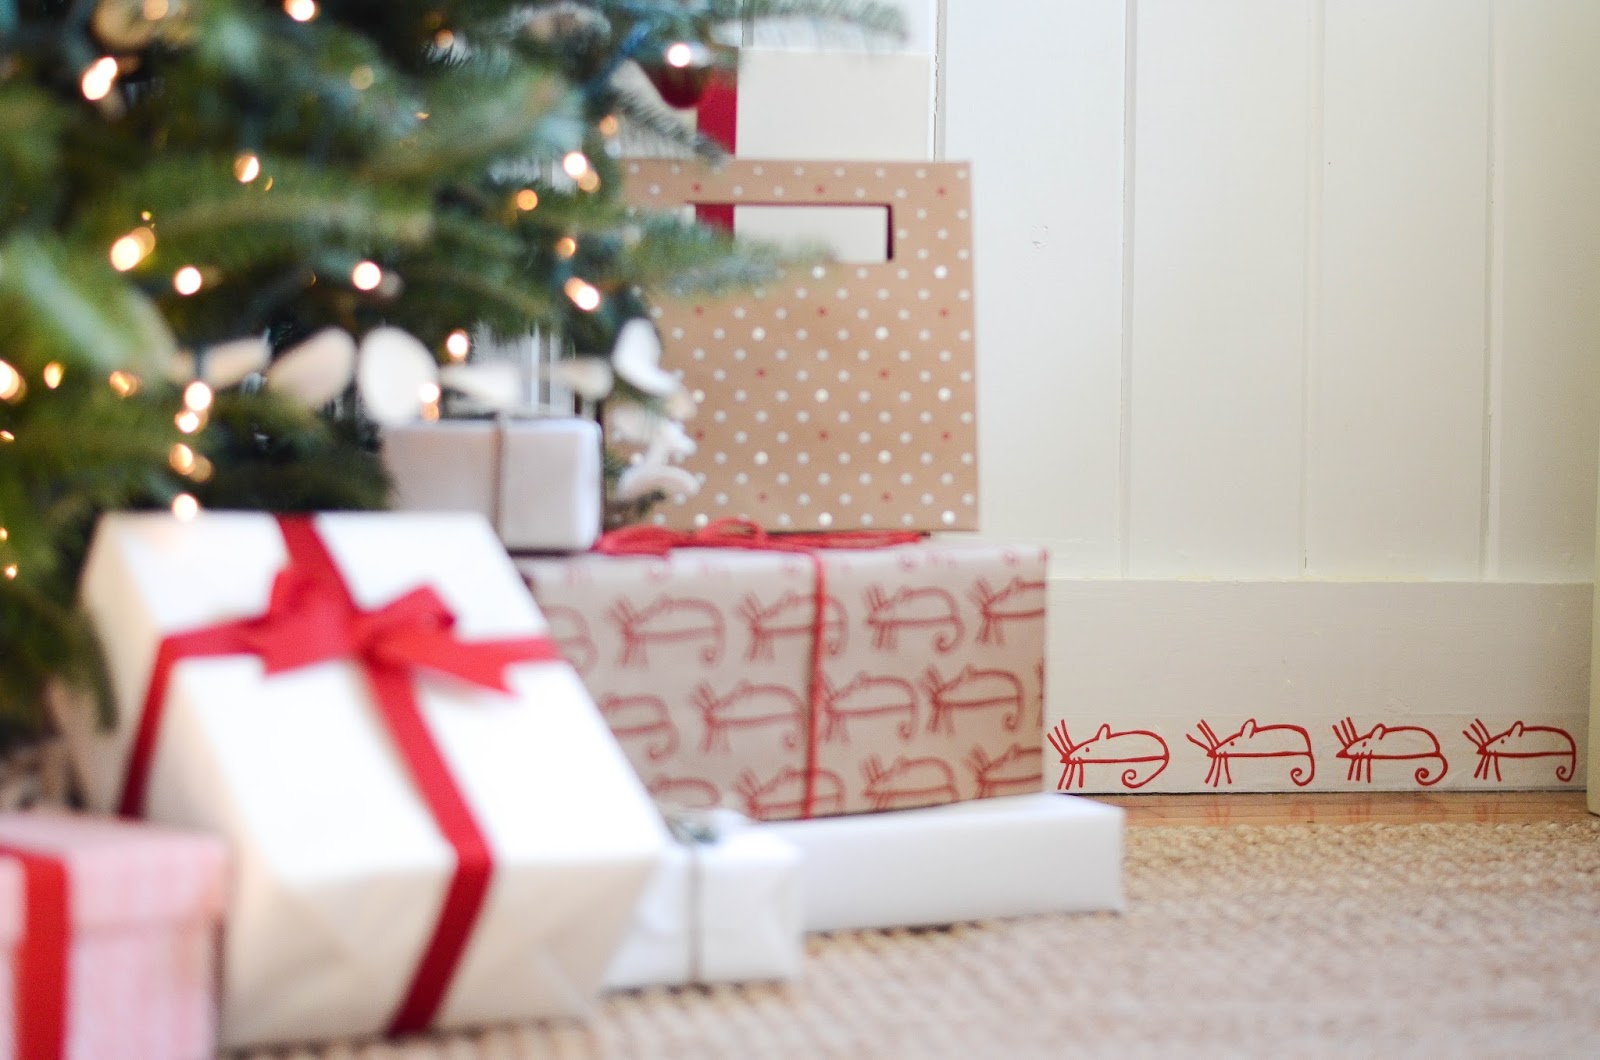 Night%2BBefore%2BChristmas%2C%2BNot%2Ba%2Bcreature%2Bwas%2Bstirring%2C%2BChristmas%2BDecor%2B(1).jpg